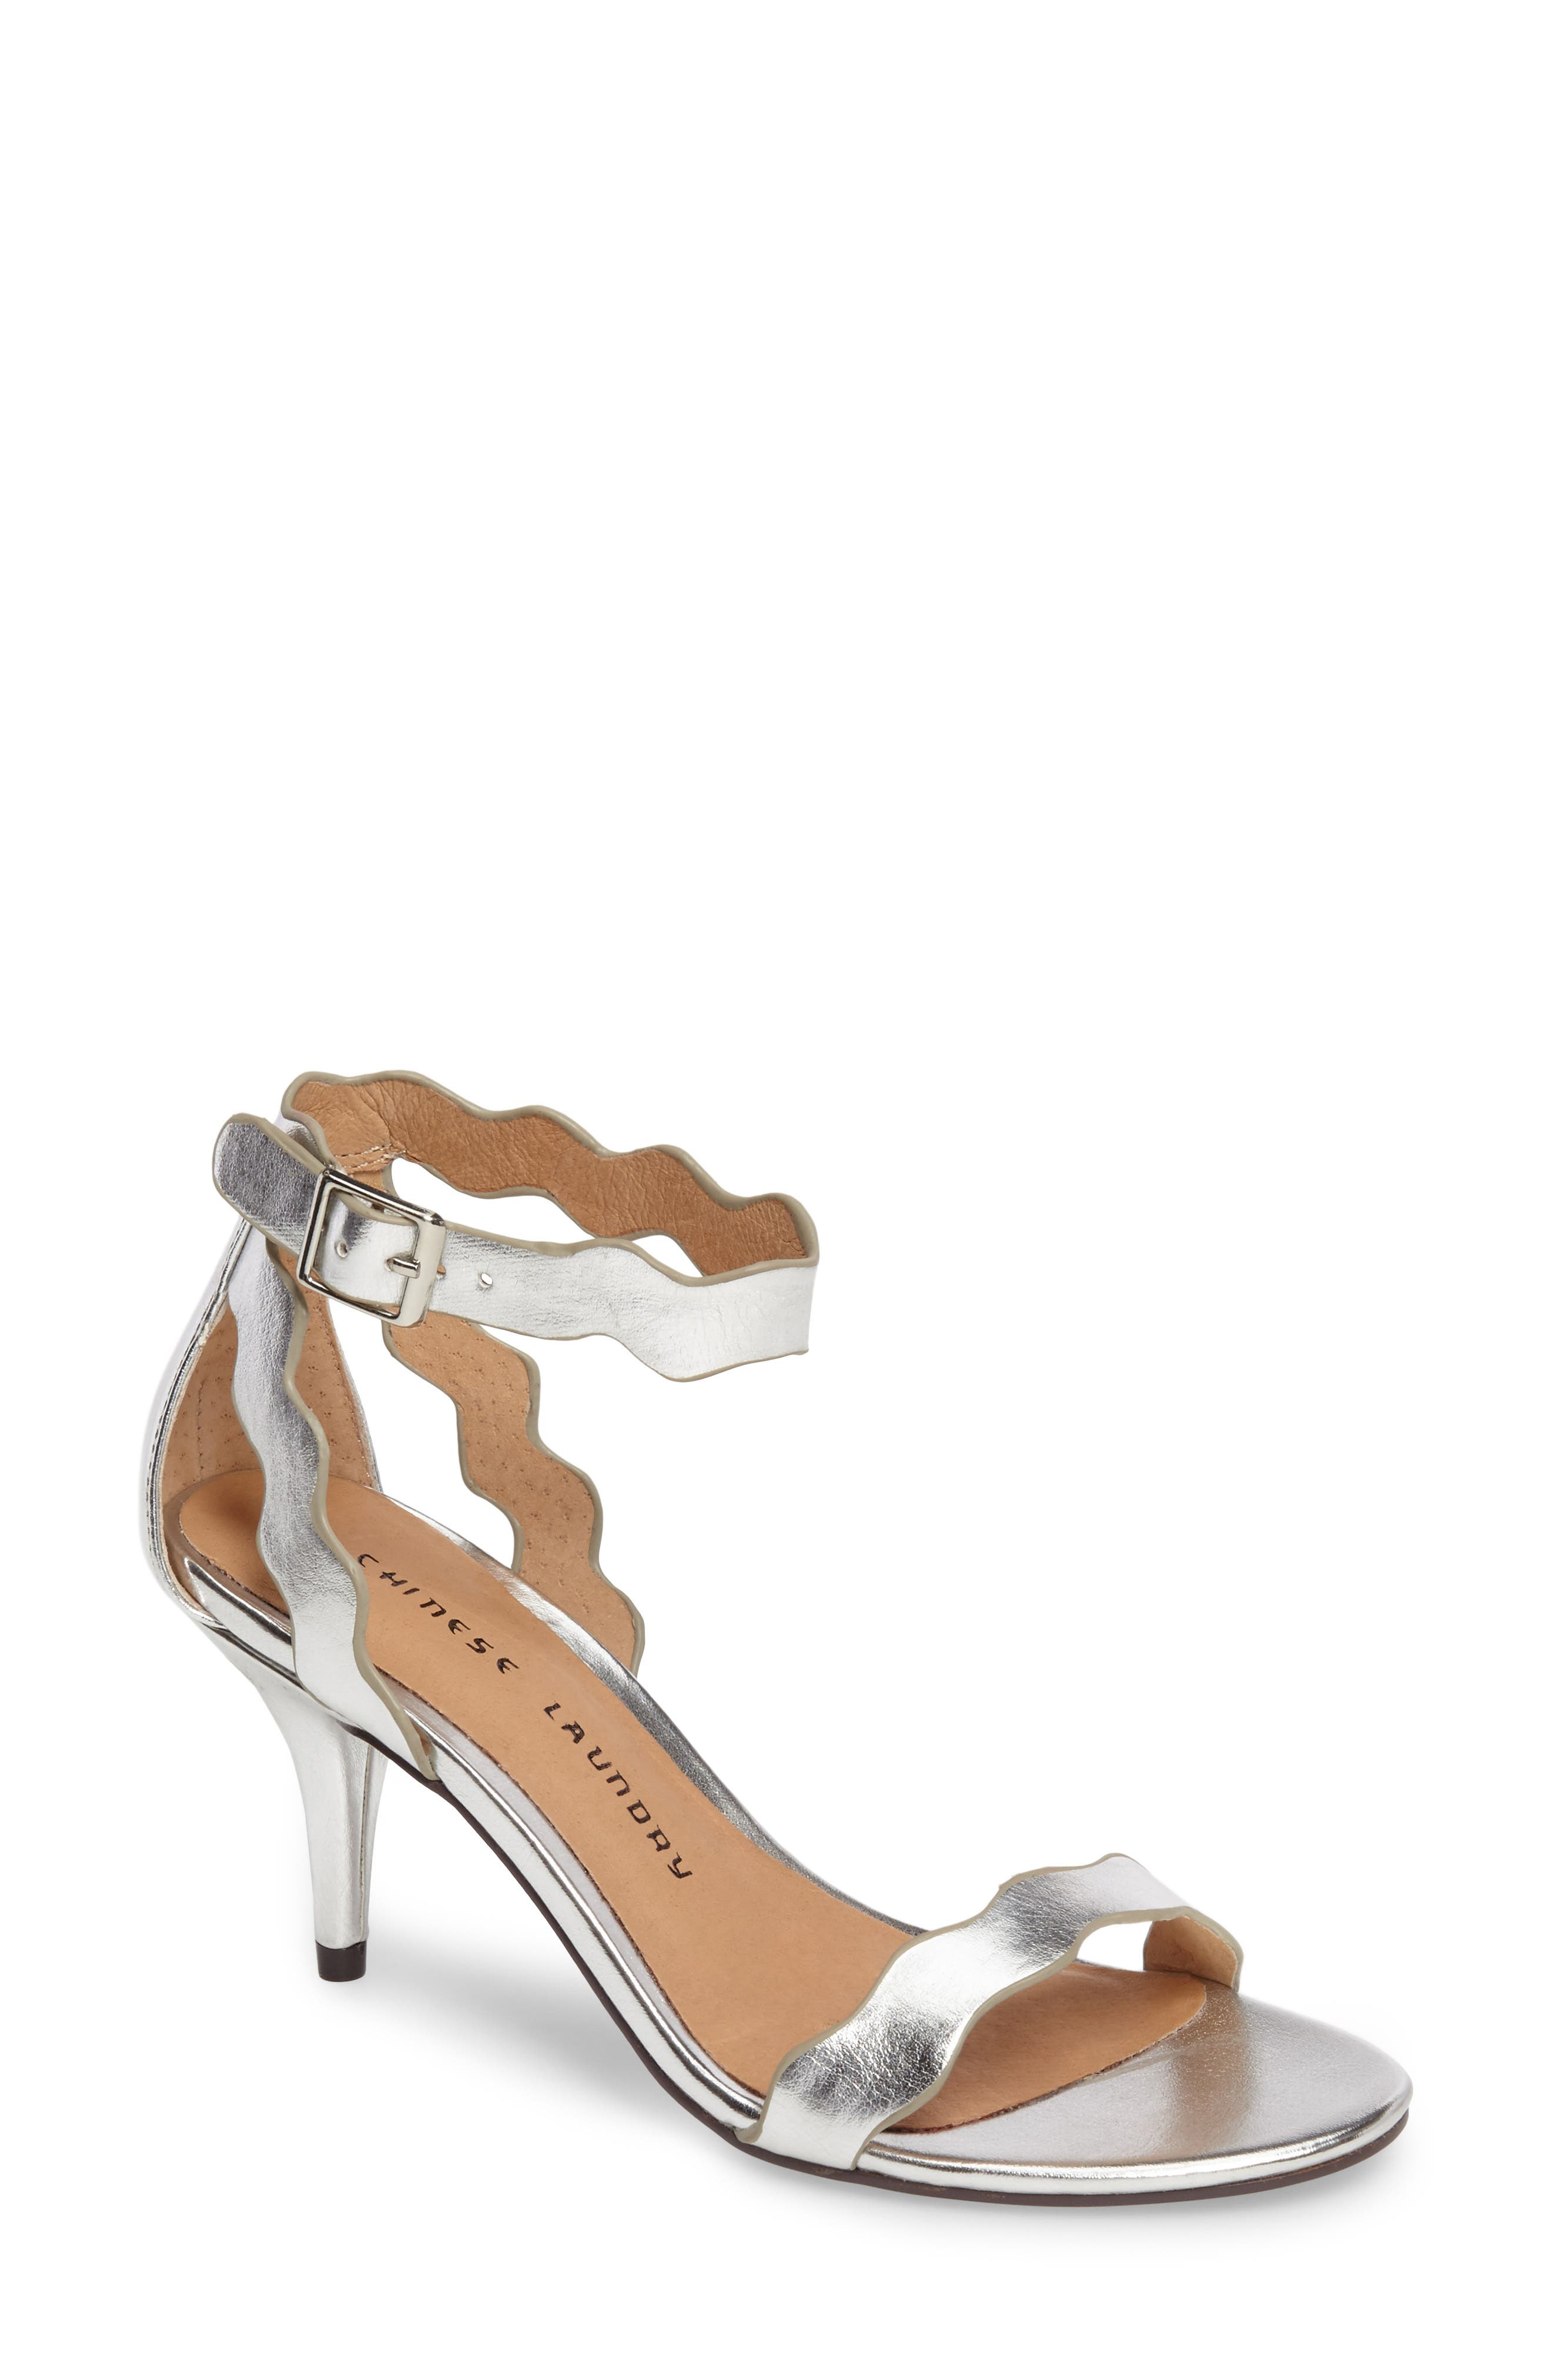 Main Image - Chinese Laundry 'Rubie' Scalloped Ankle Strap Sandal (Women)